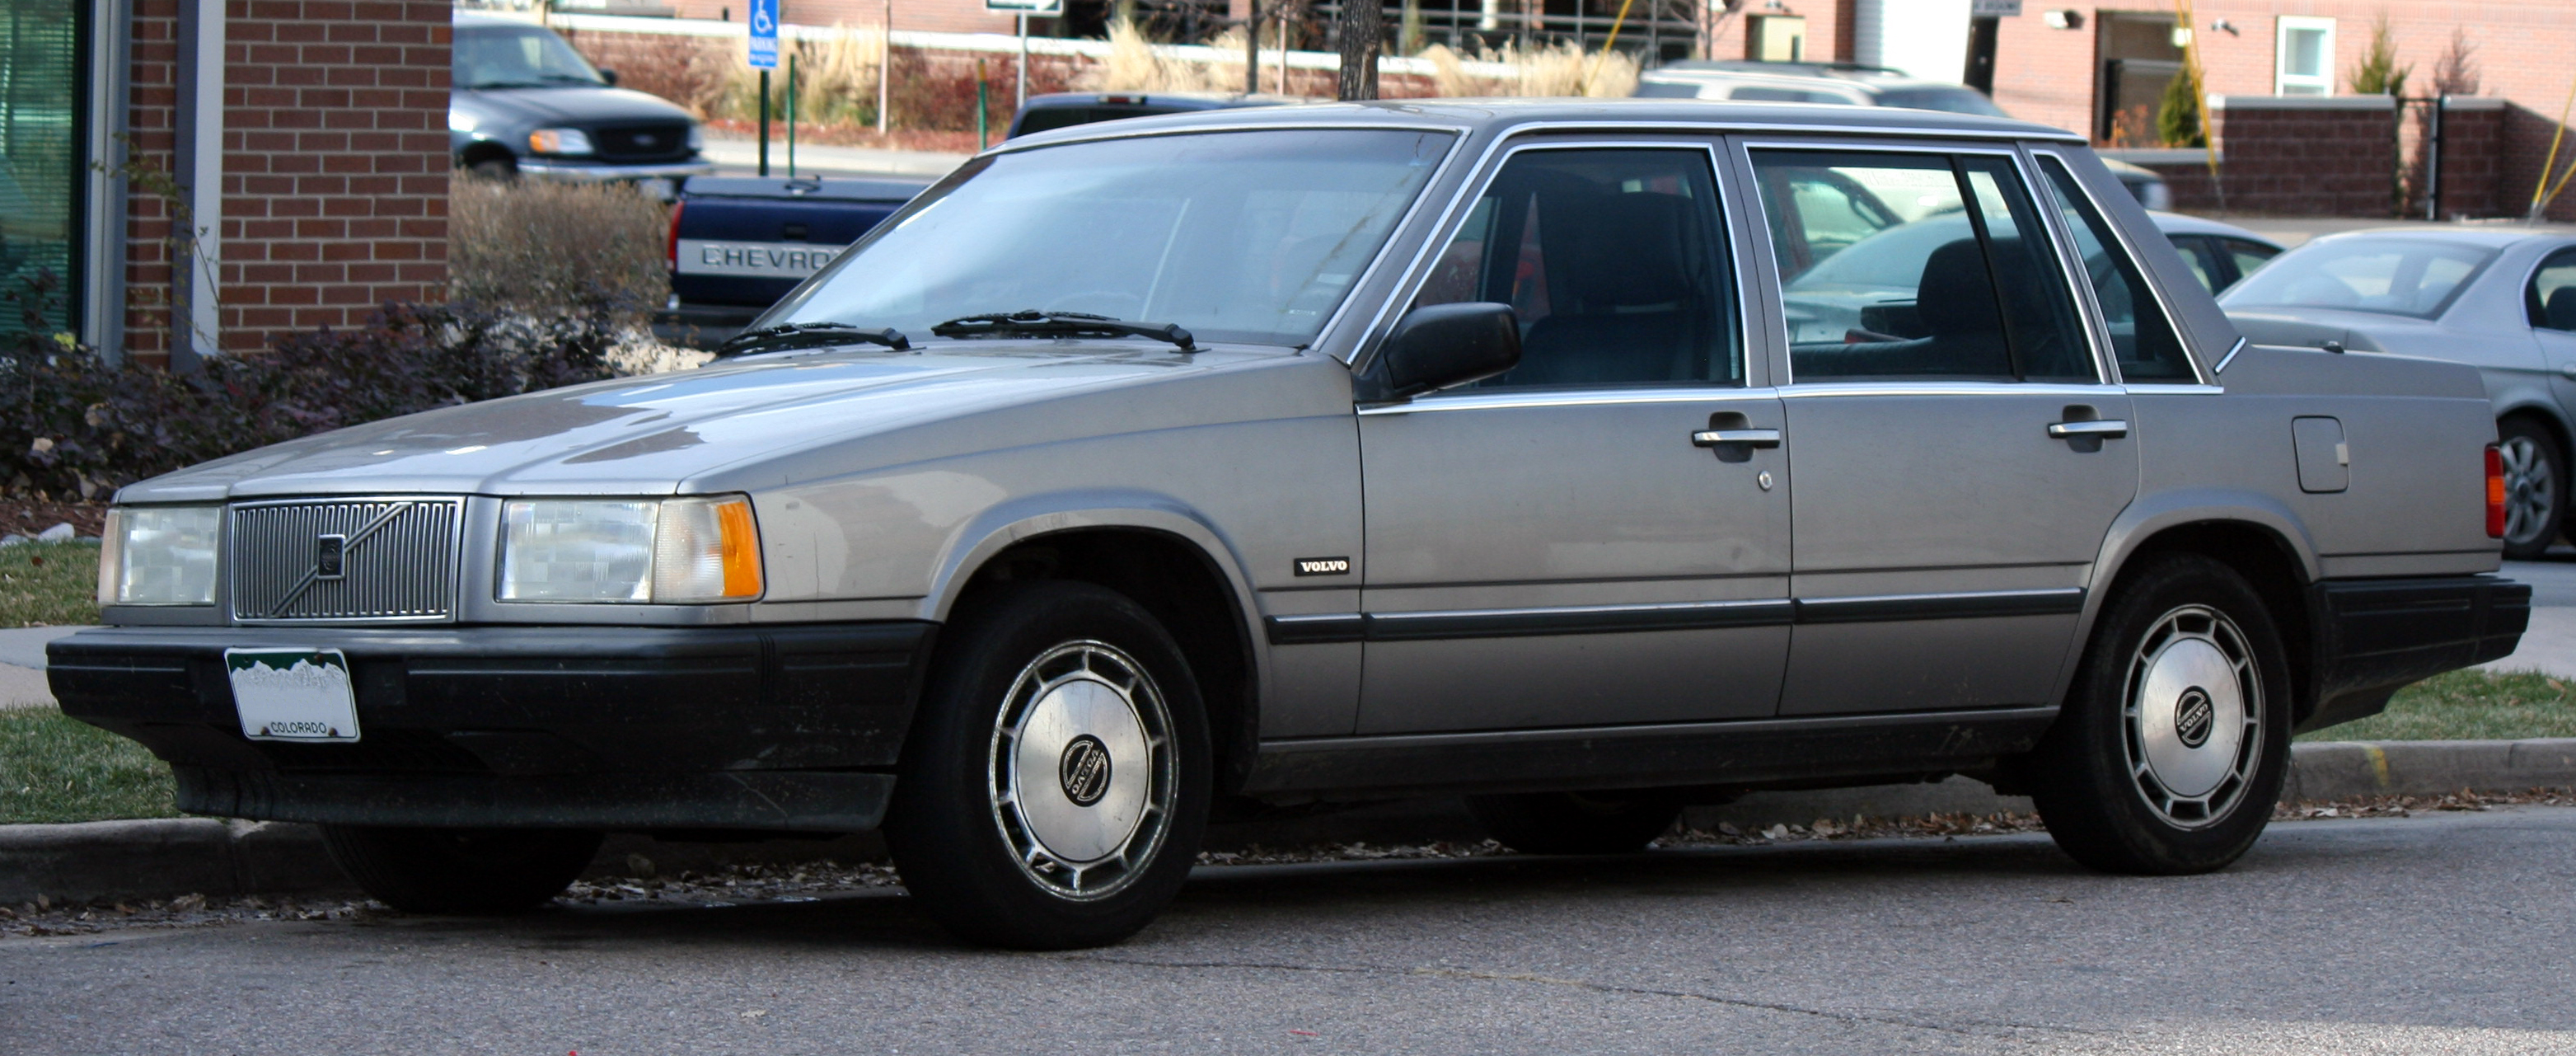 1990 Volvo 740 - Information and photos - ZombieDrive